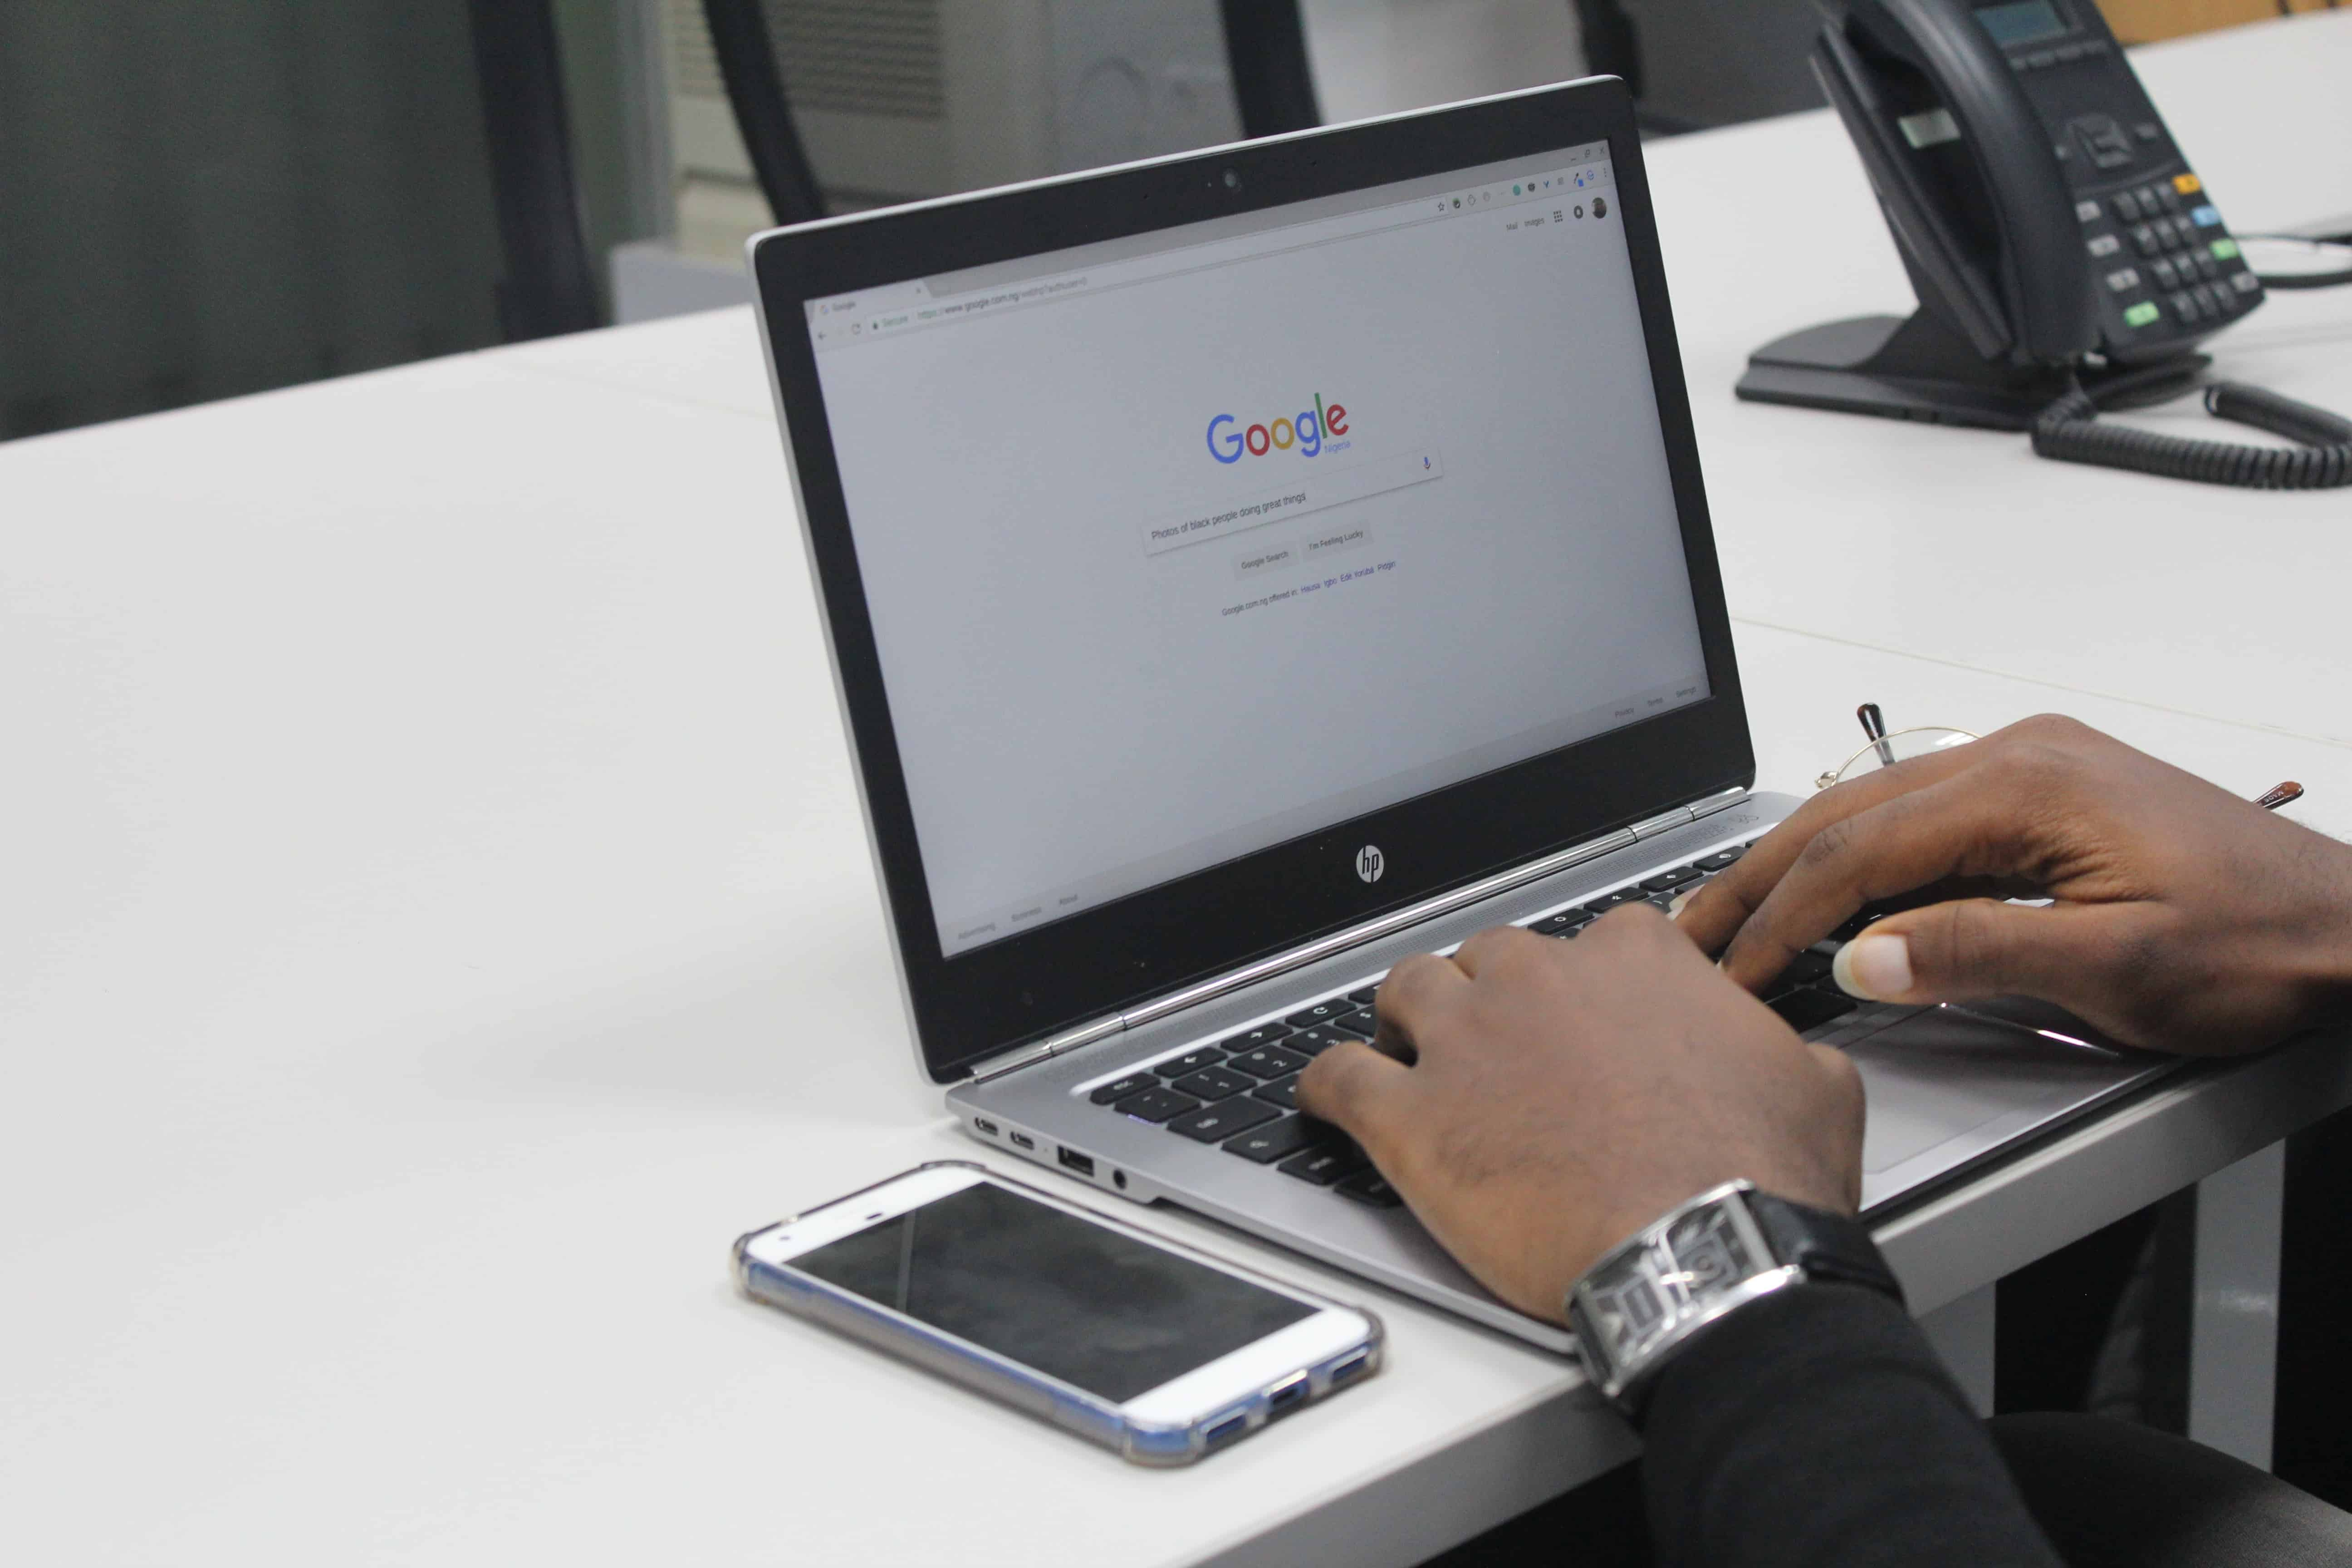 Searching on Google